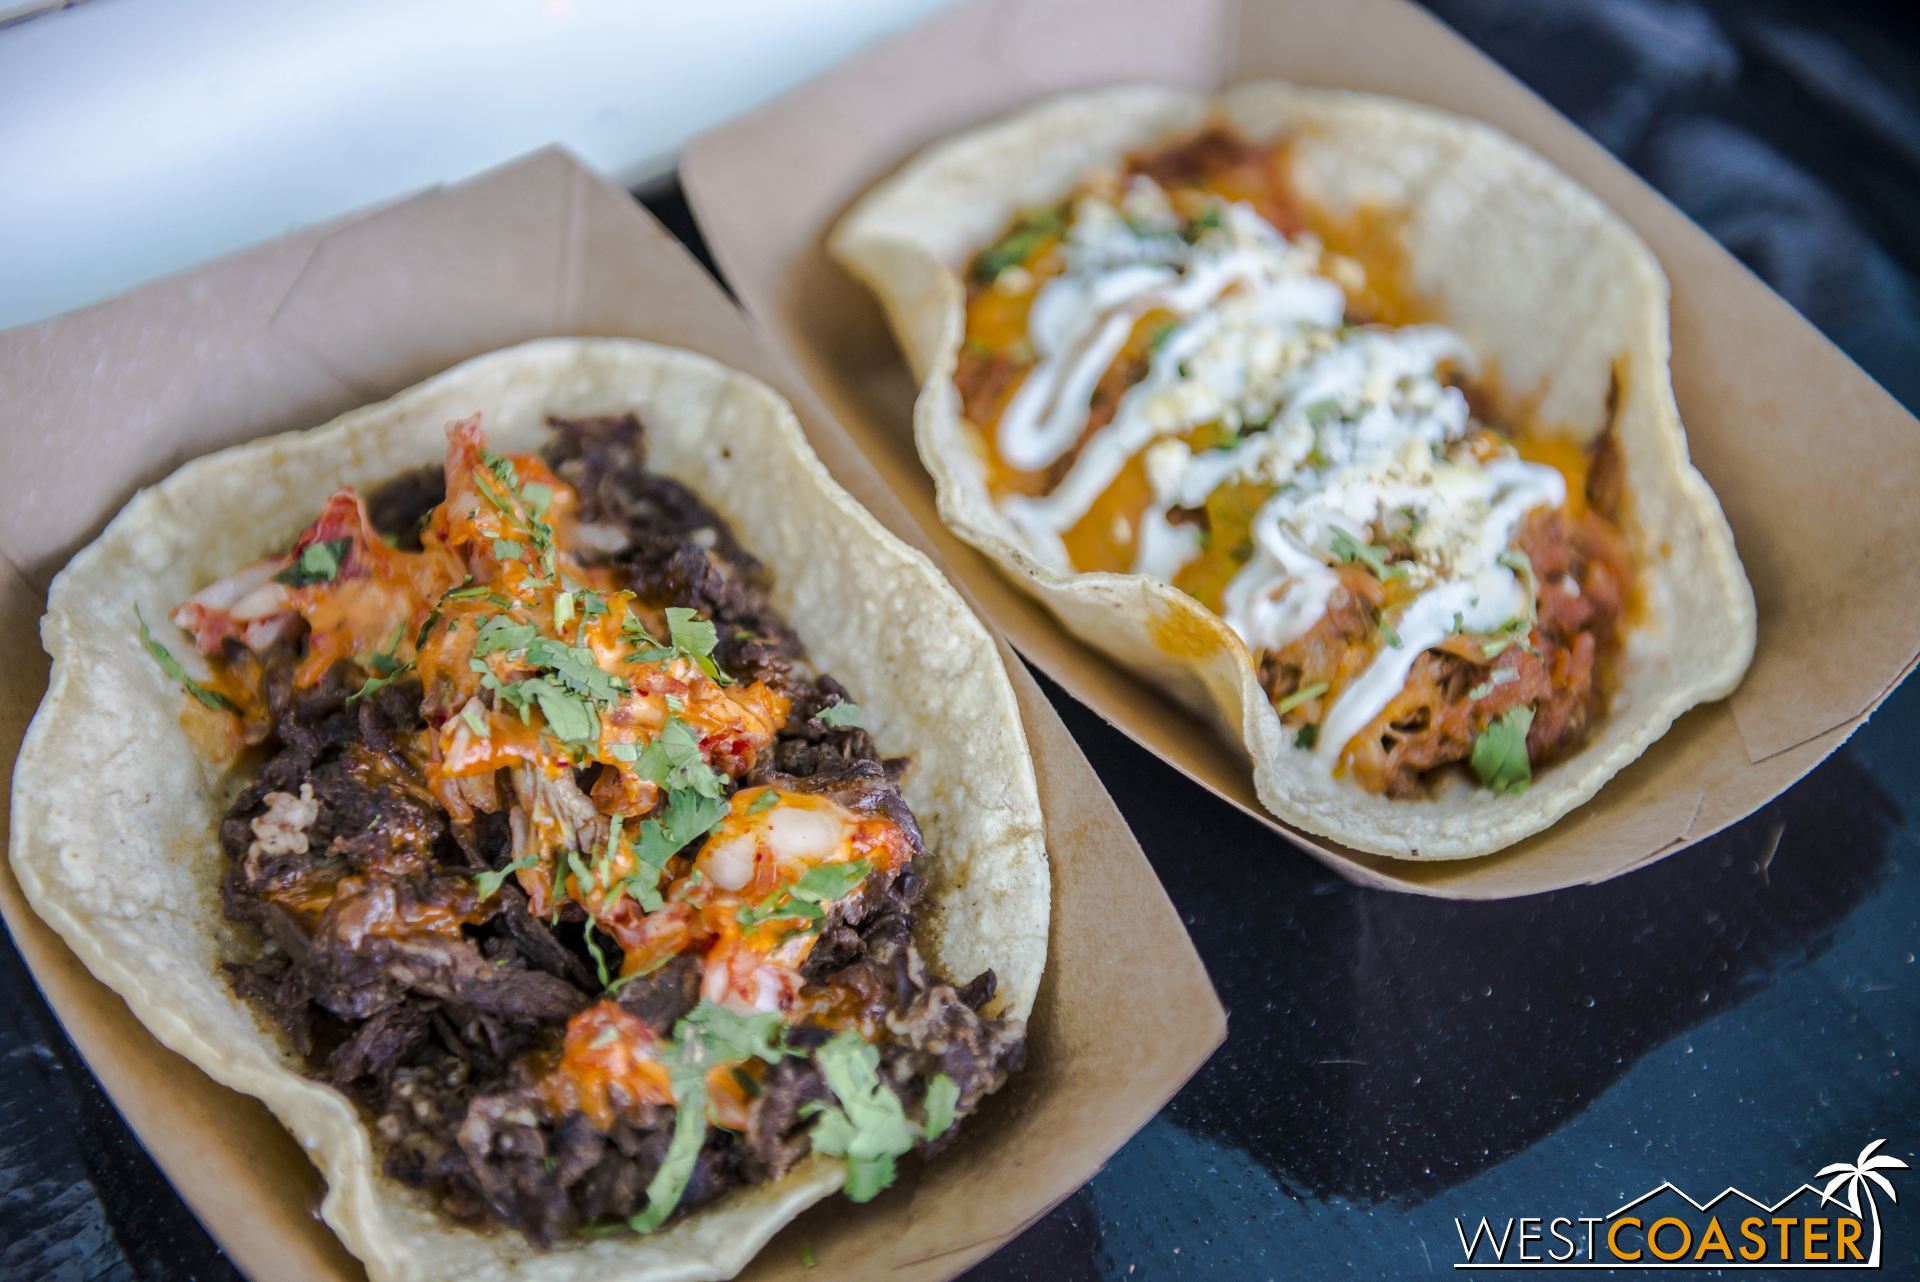 I had a Korean BBQ beef taco from The Kroft (which can be found at the Packing House in Anaheim and at The District in Tustin).  It was fantastic.